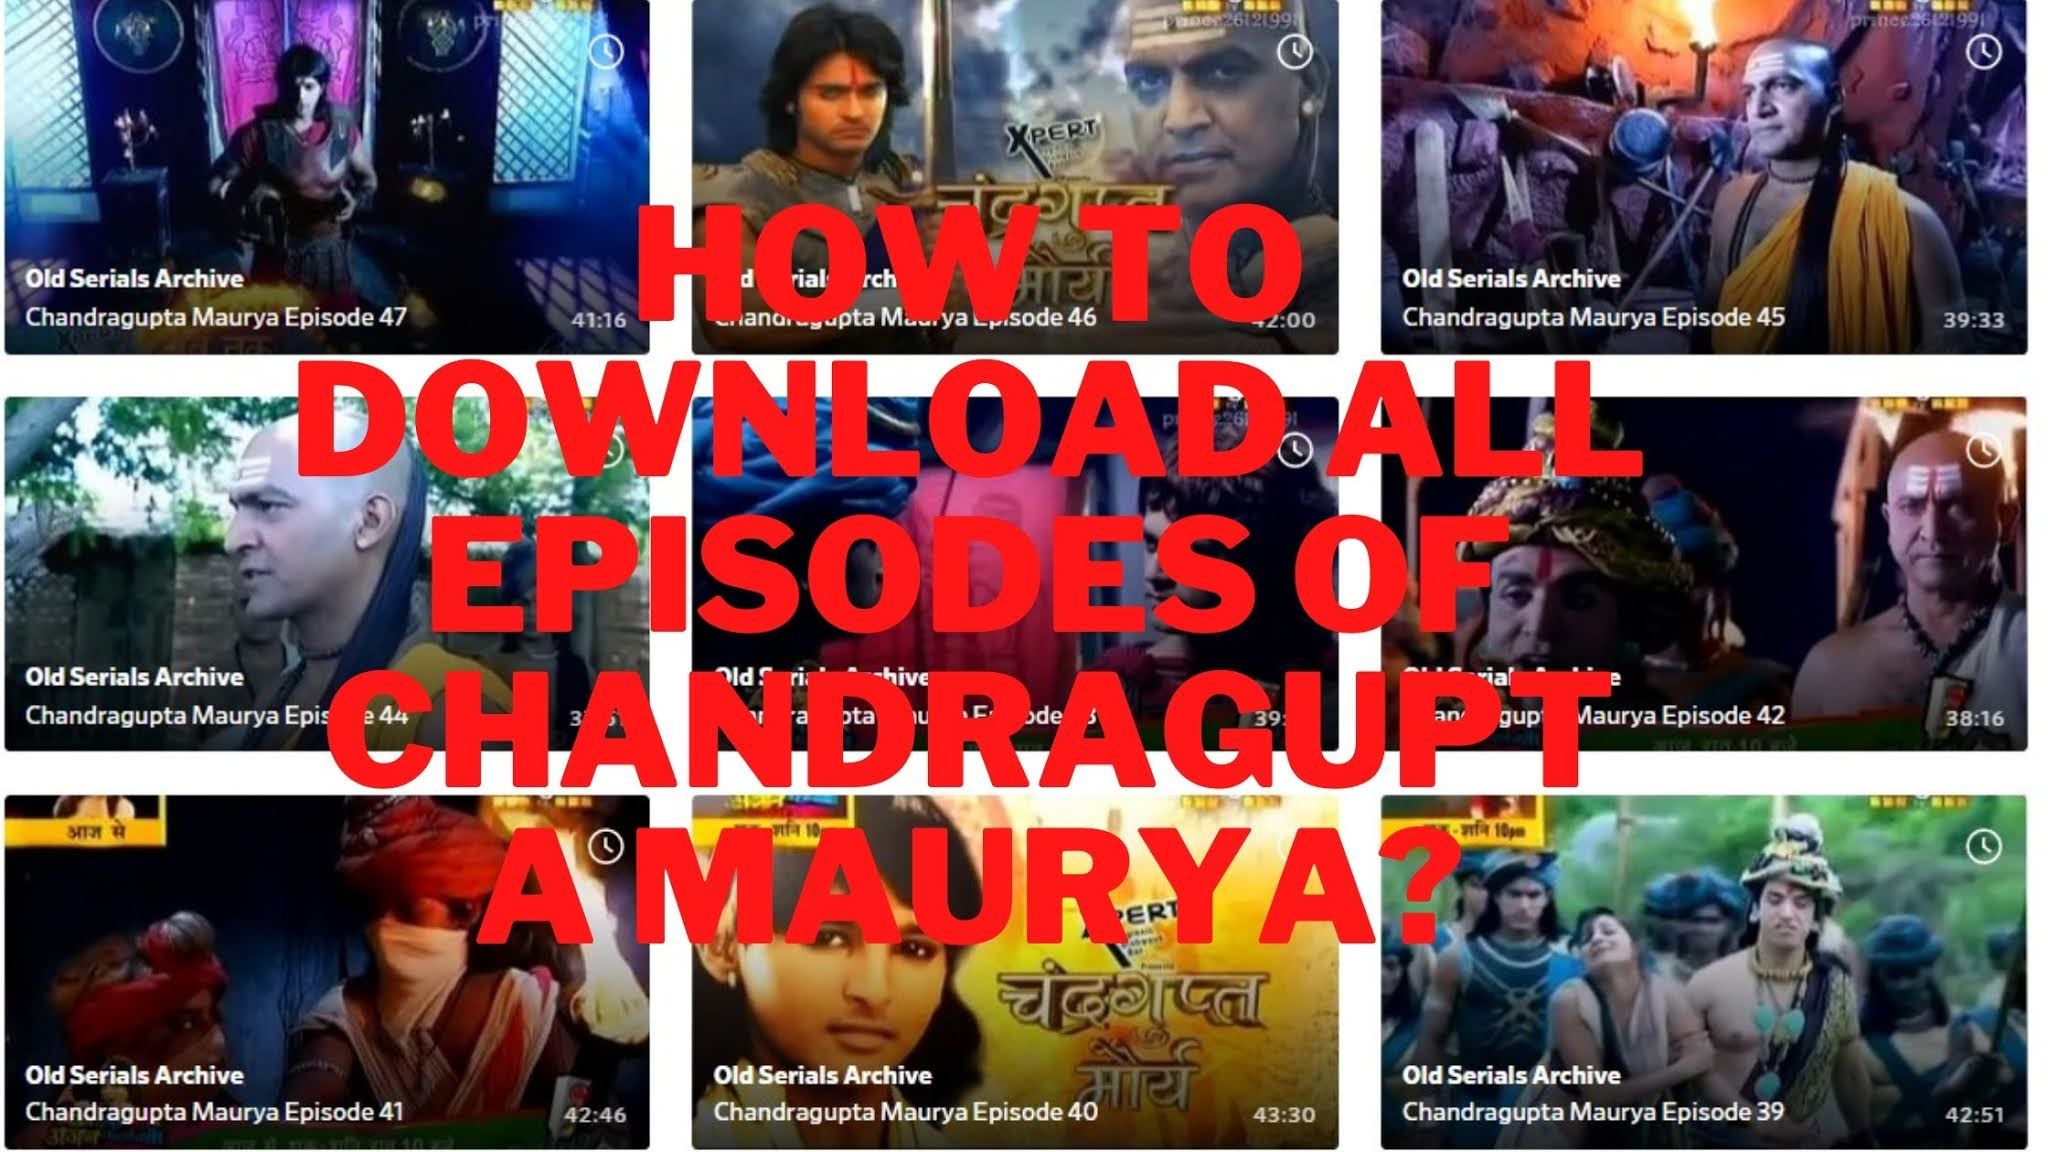 How to download all episodes of Chandragupta Maurya?